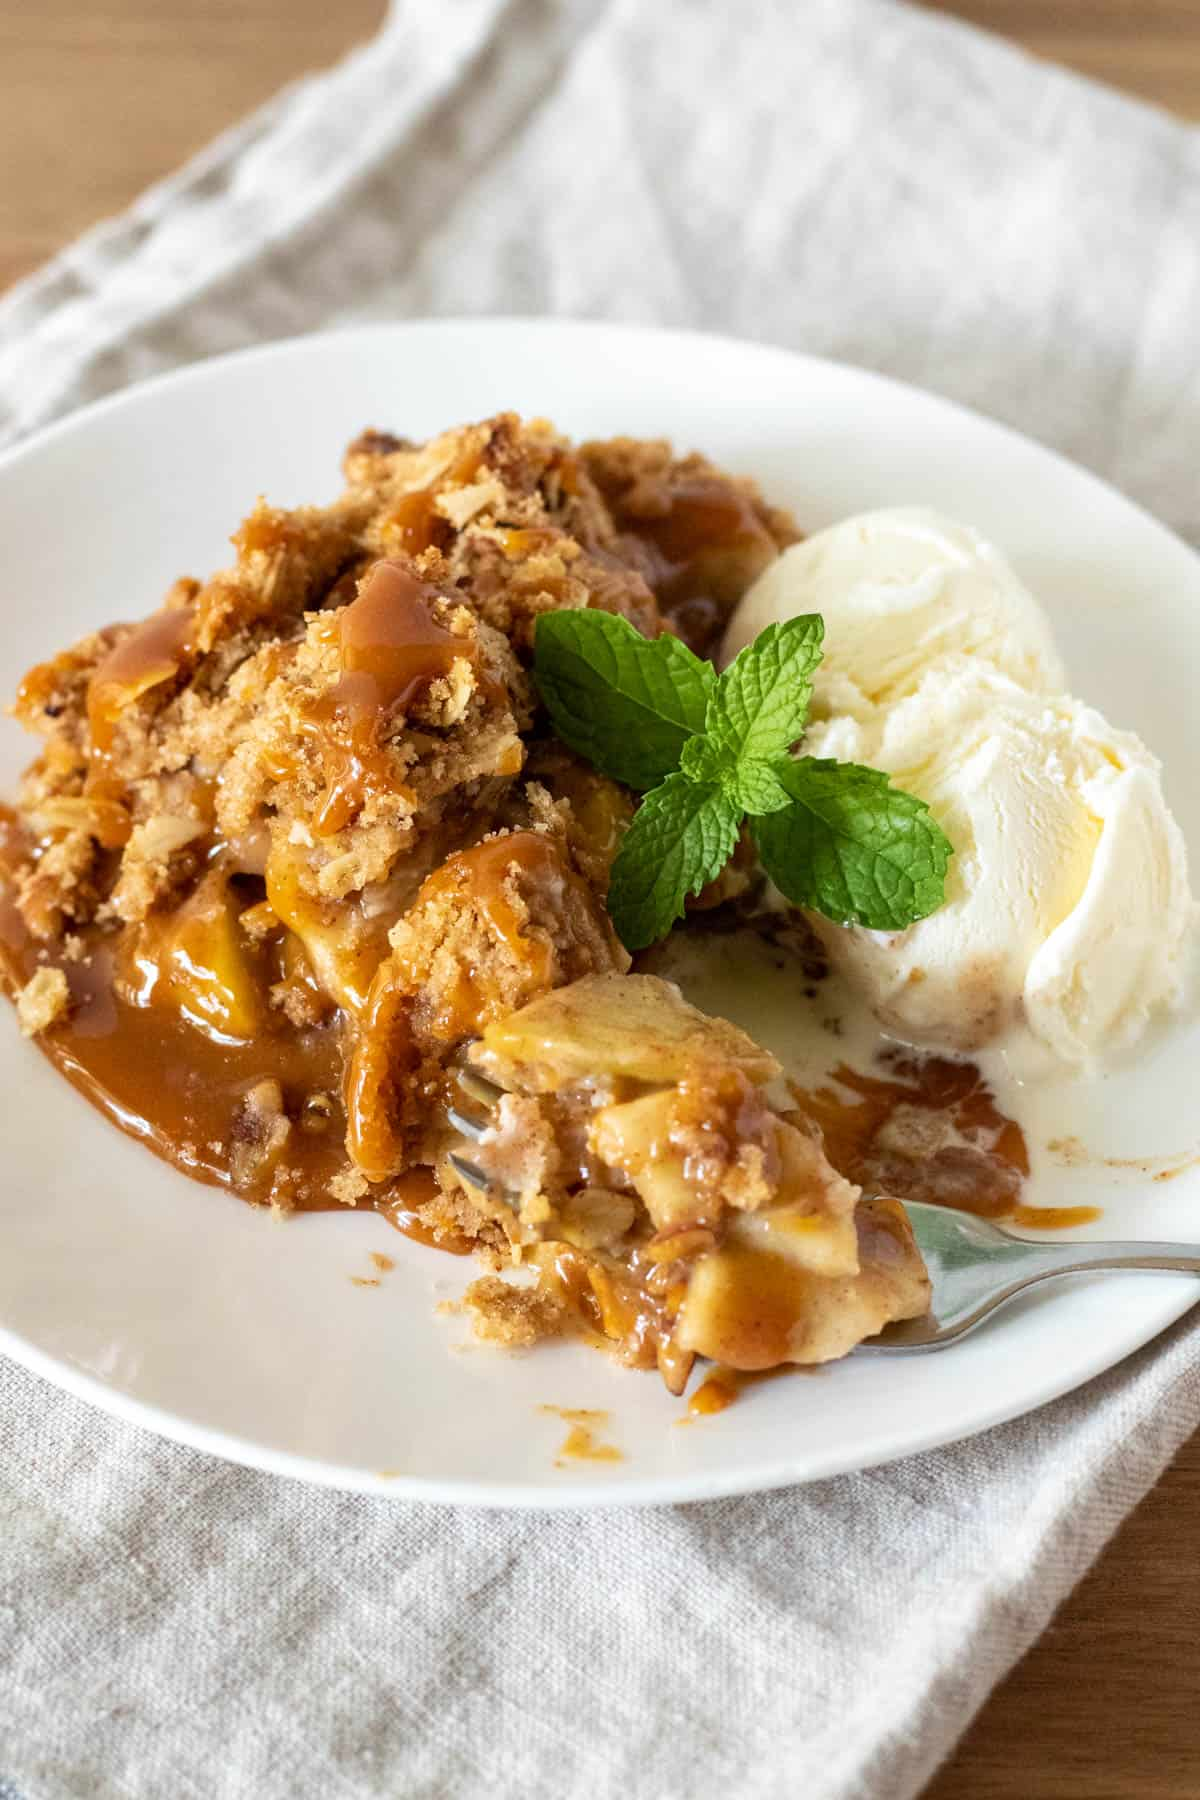 Piece of Dutch apple pie with caramel sauce and vanilla ice cream on white plate.